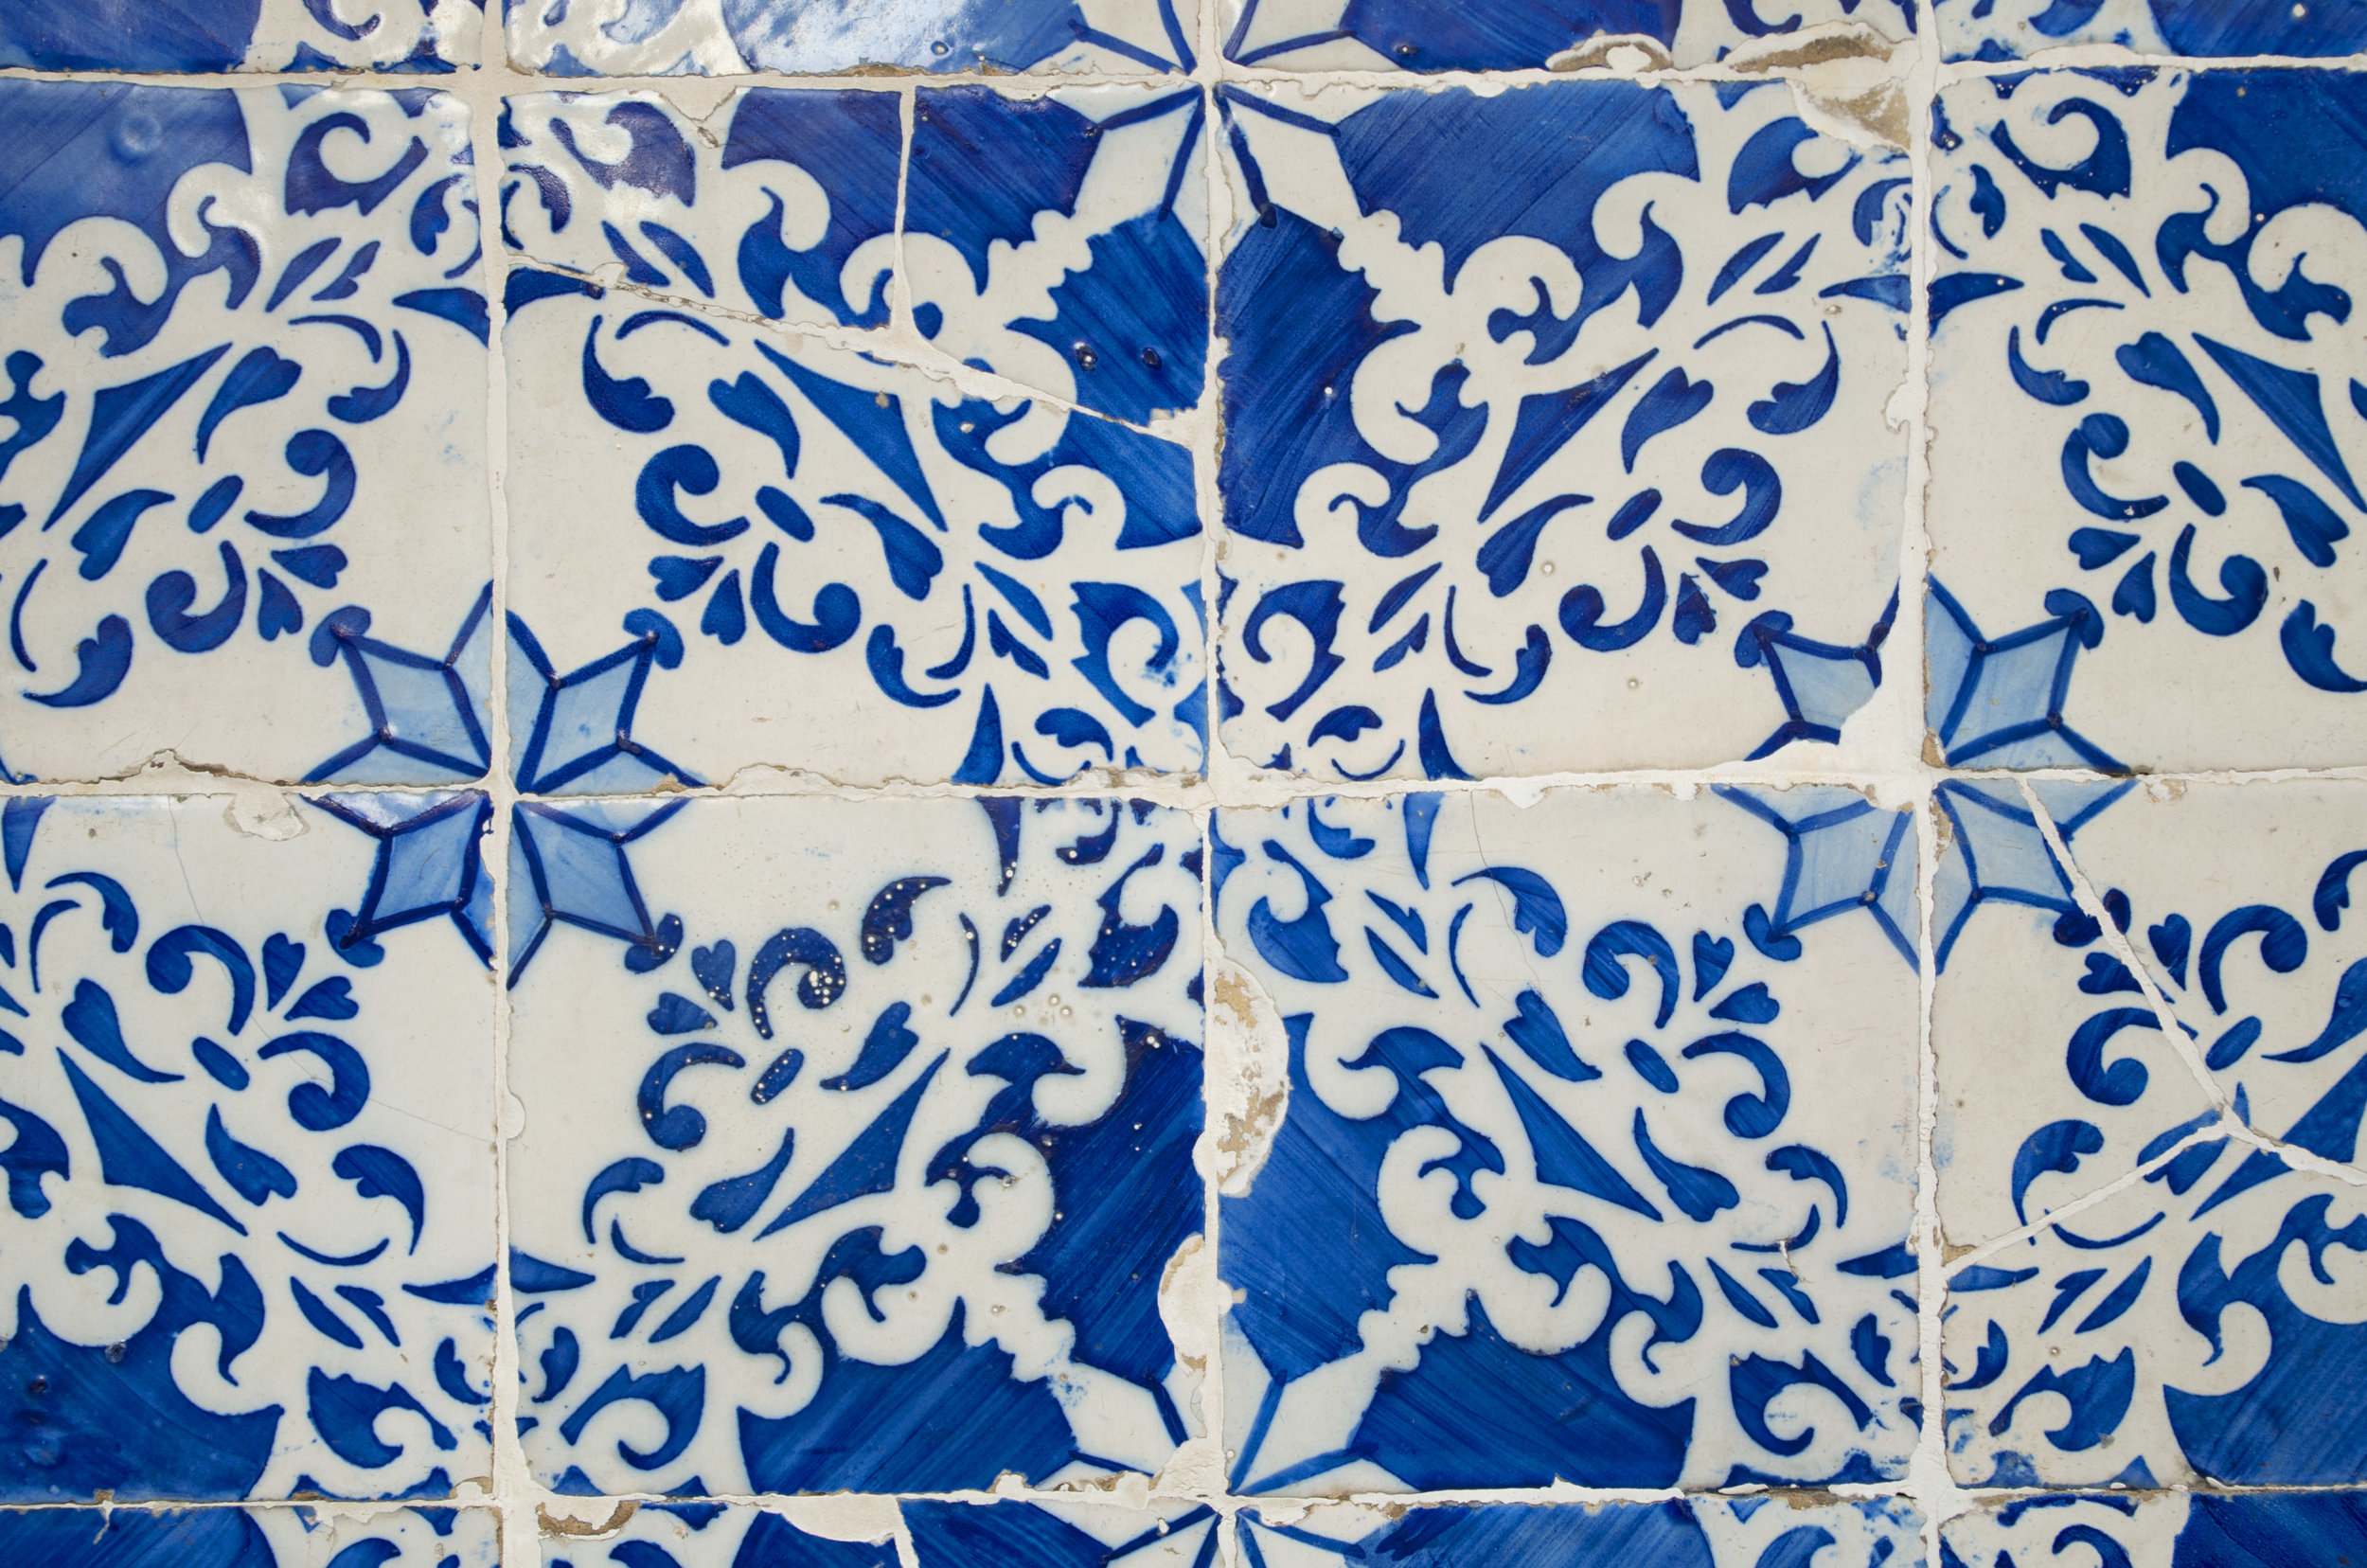 Tiling on the facade of a building in Lisbon